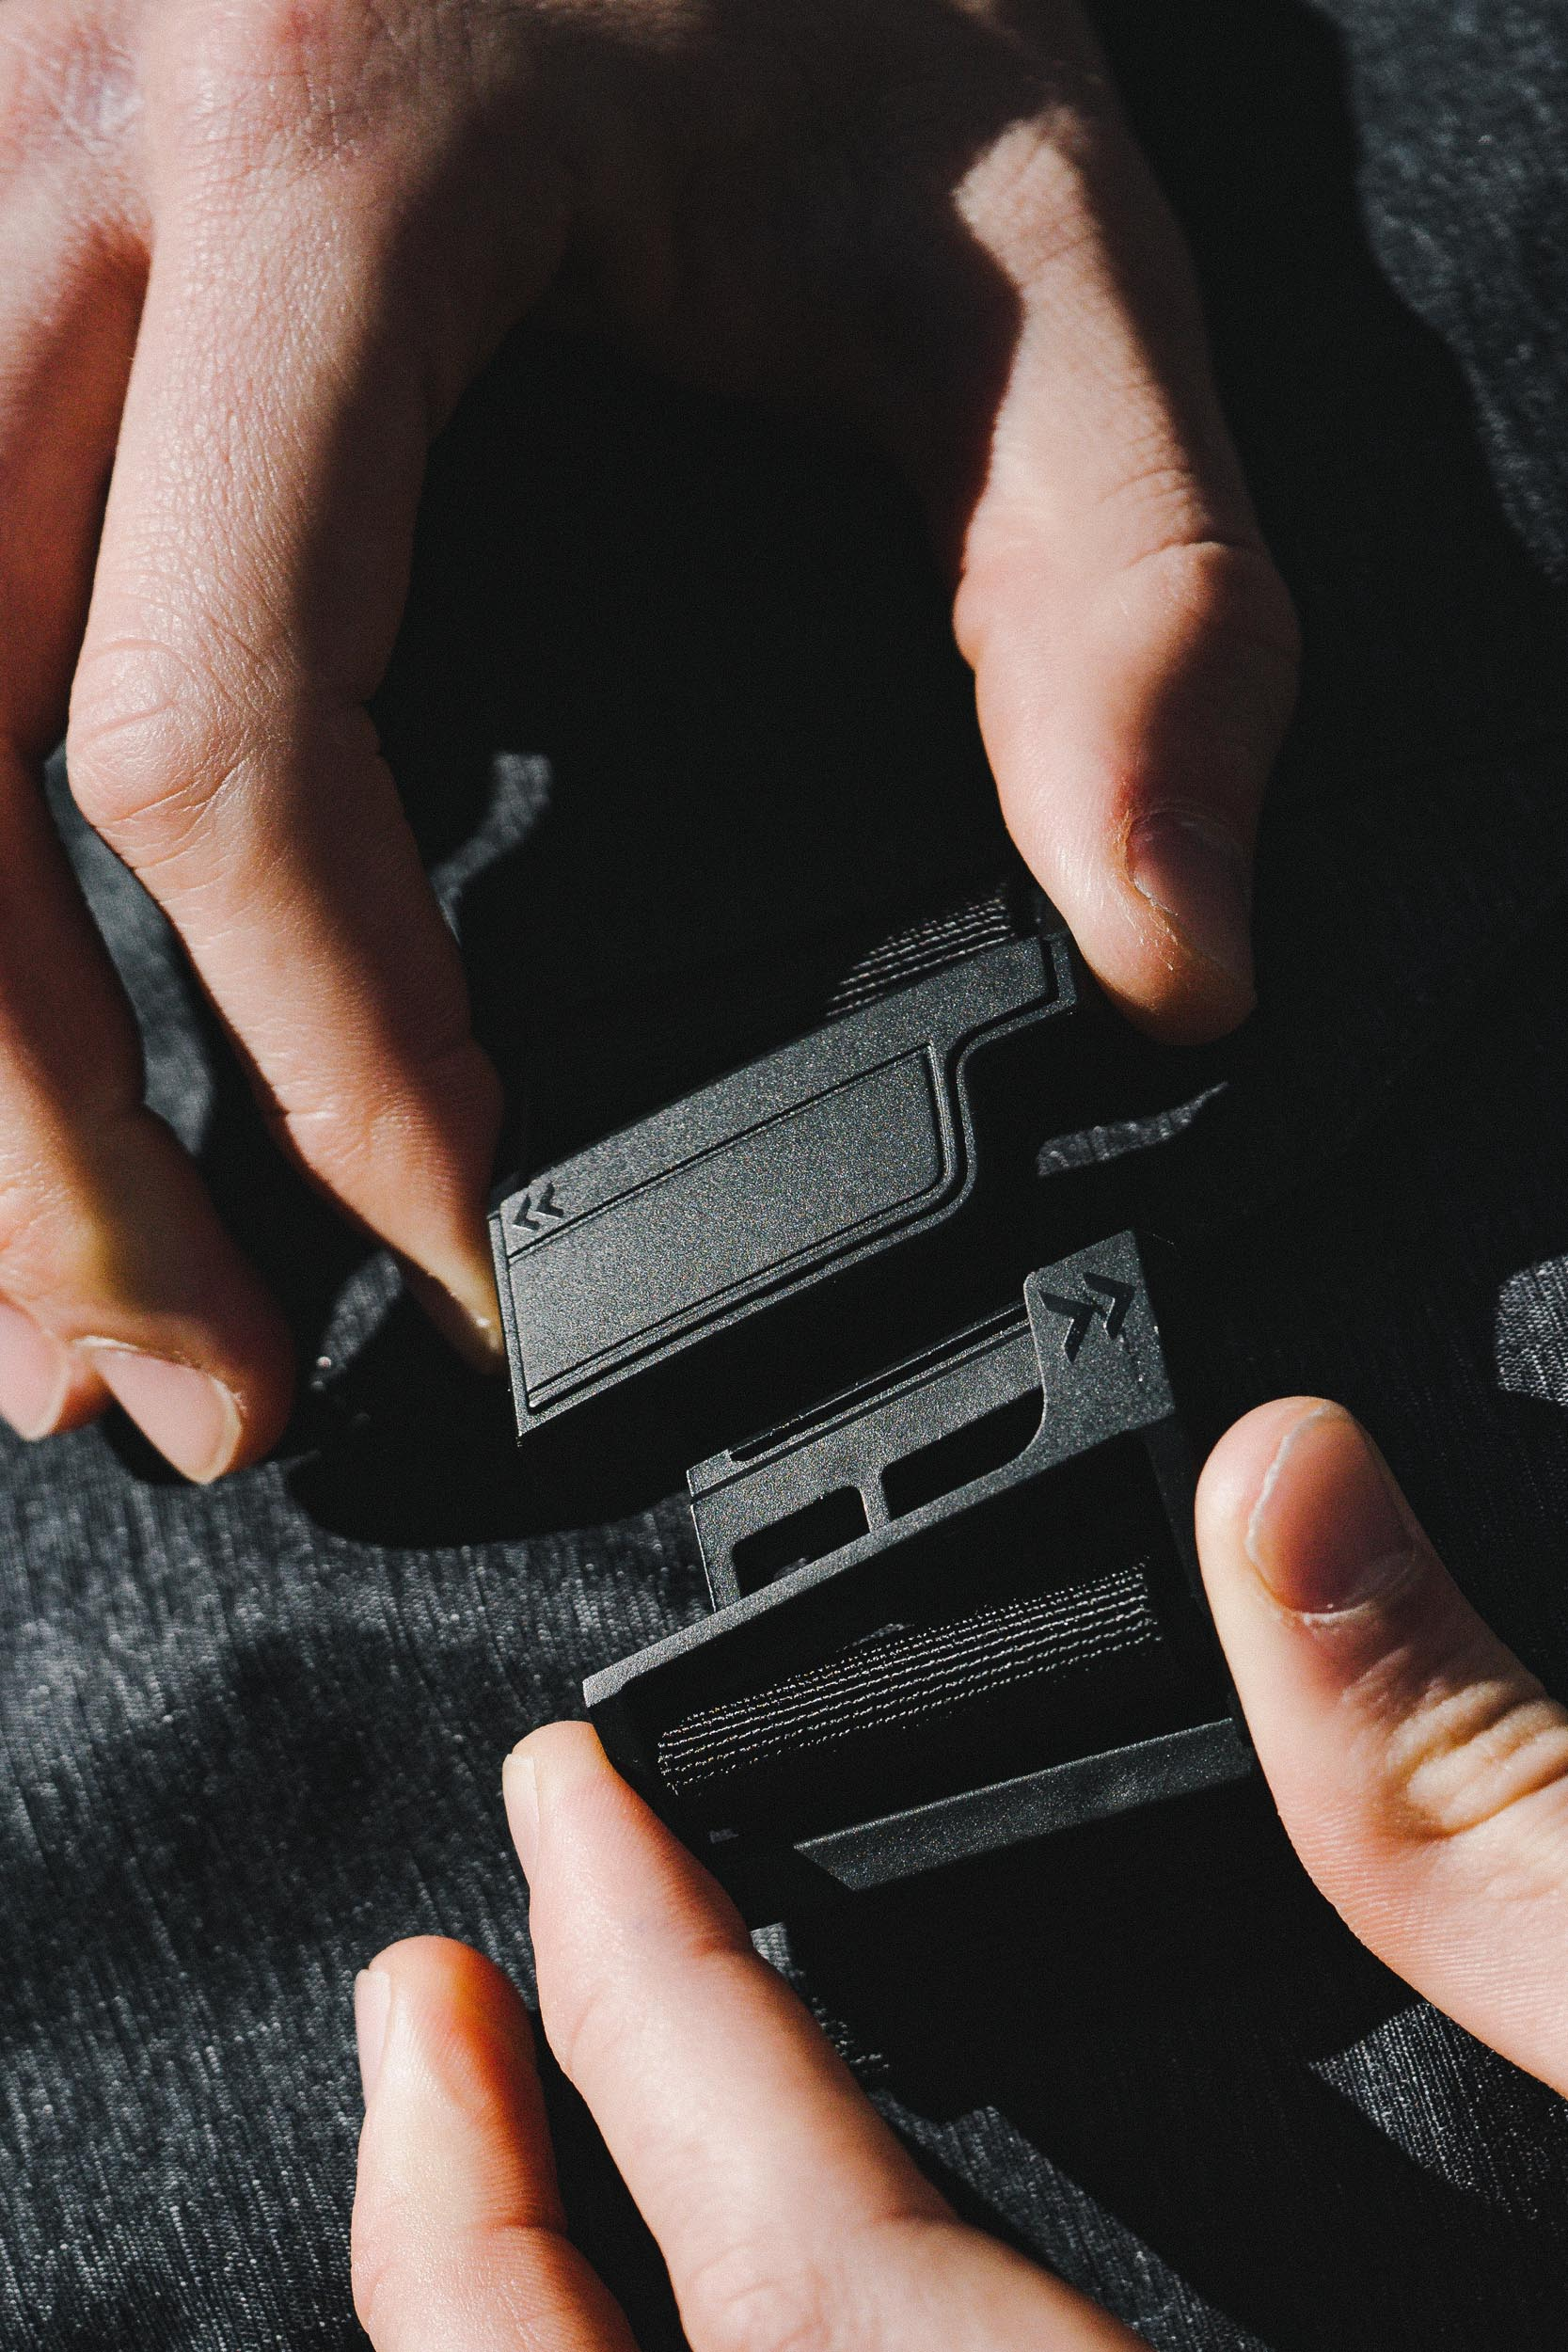 The Fidlock magnetic fastener allows for one-handed quick access.